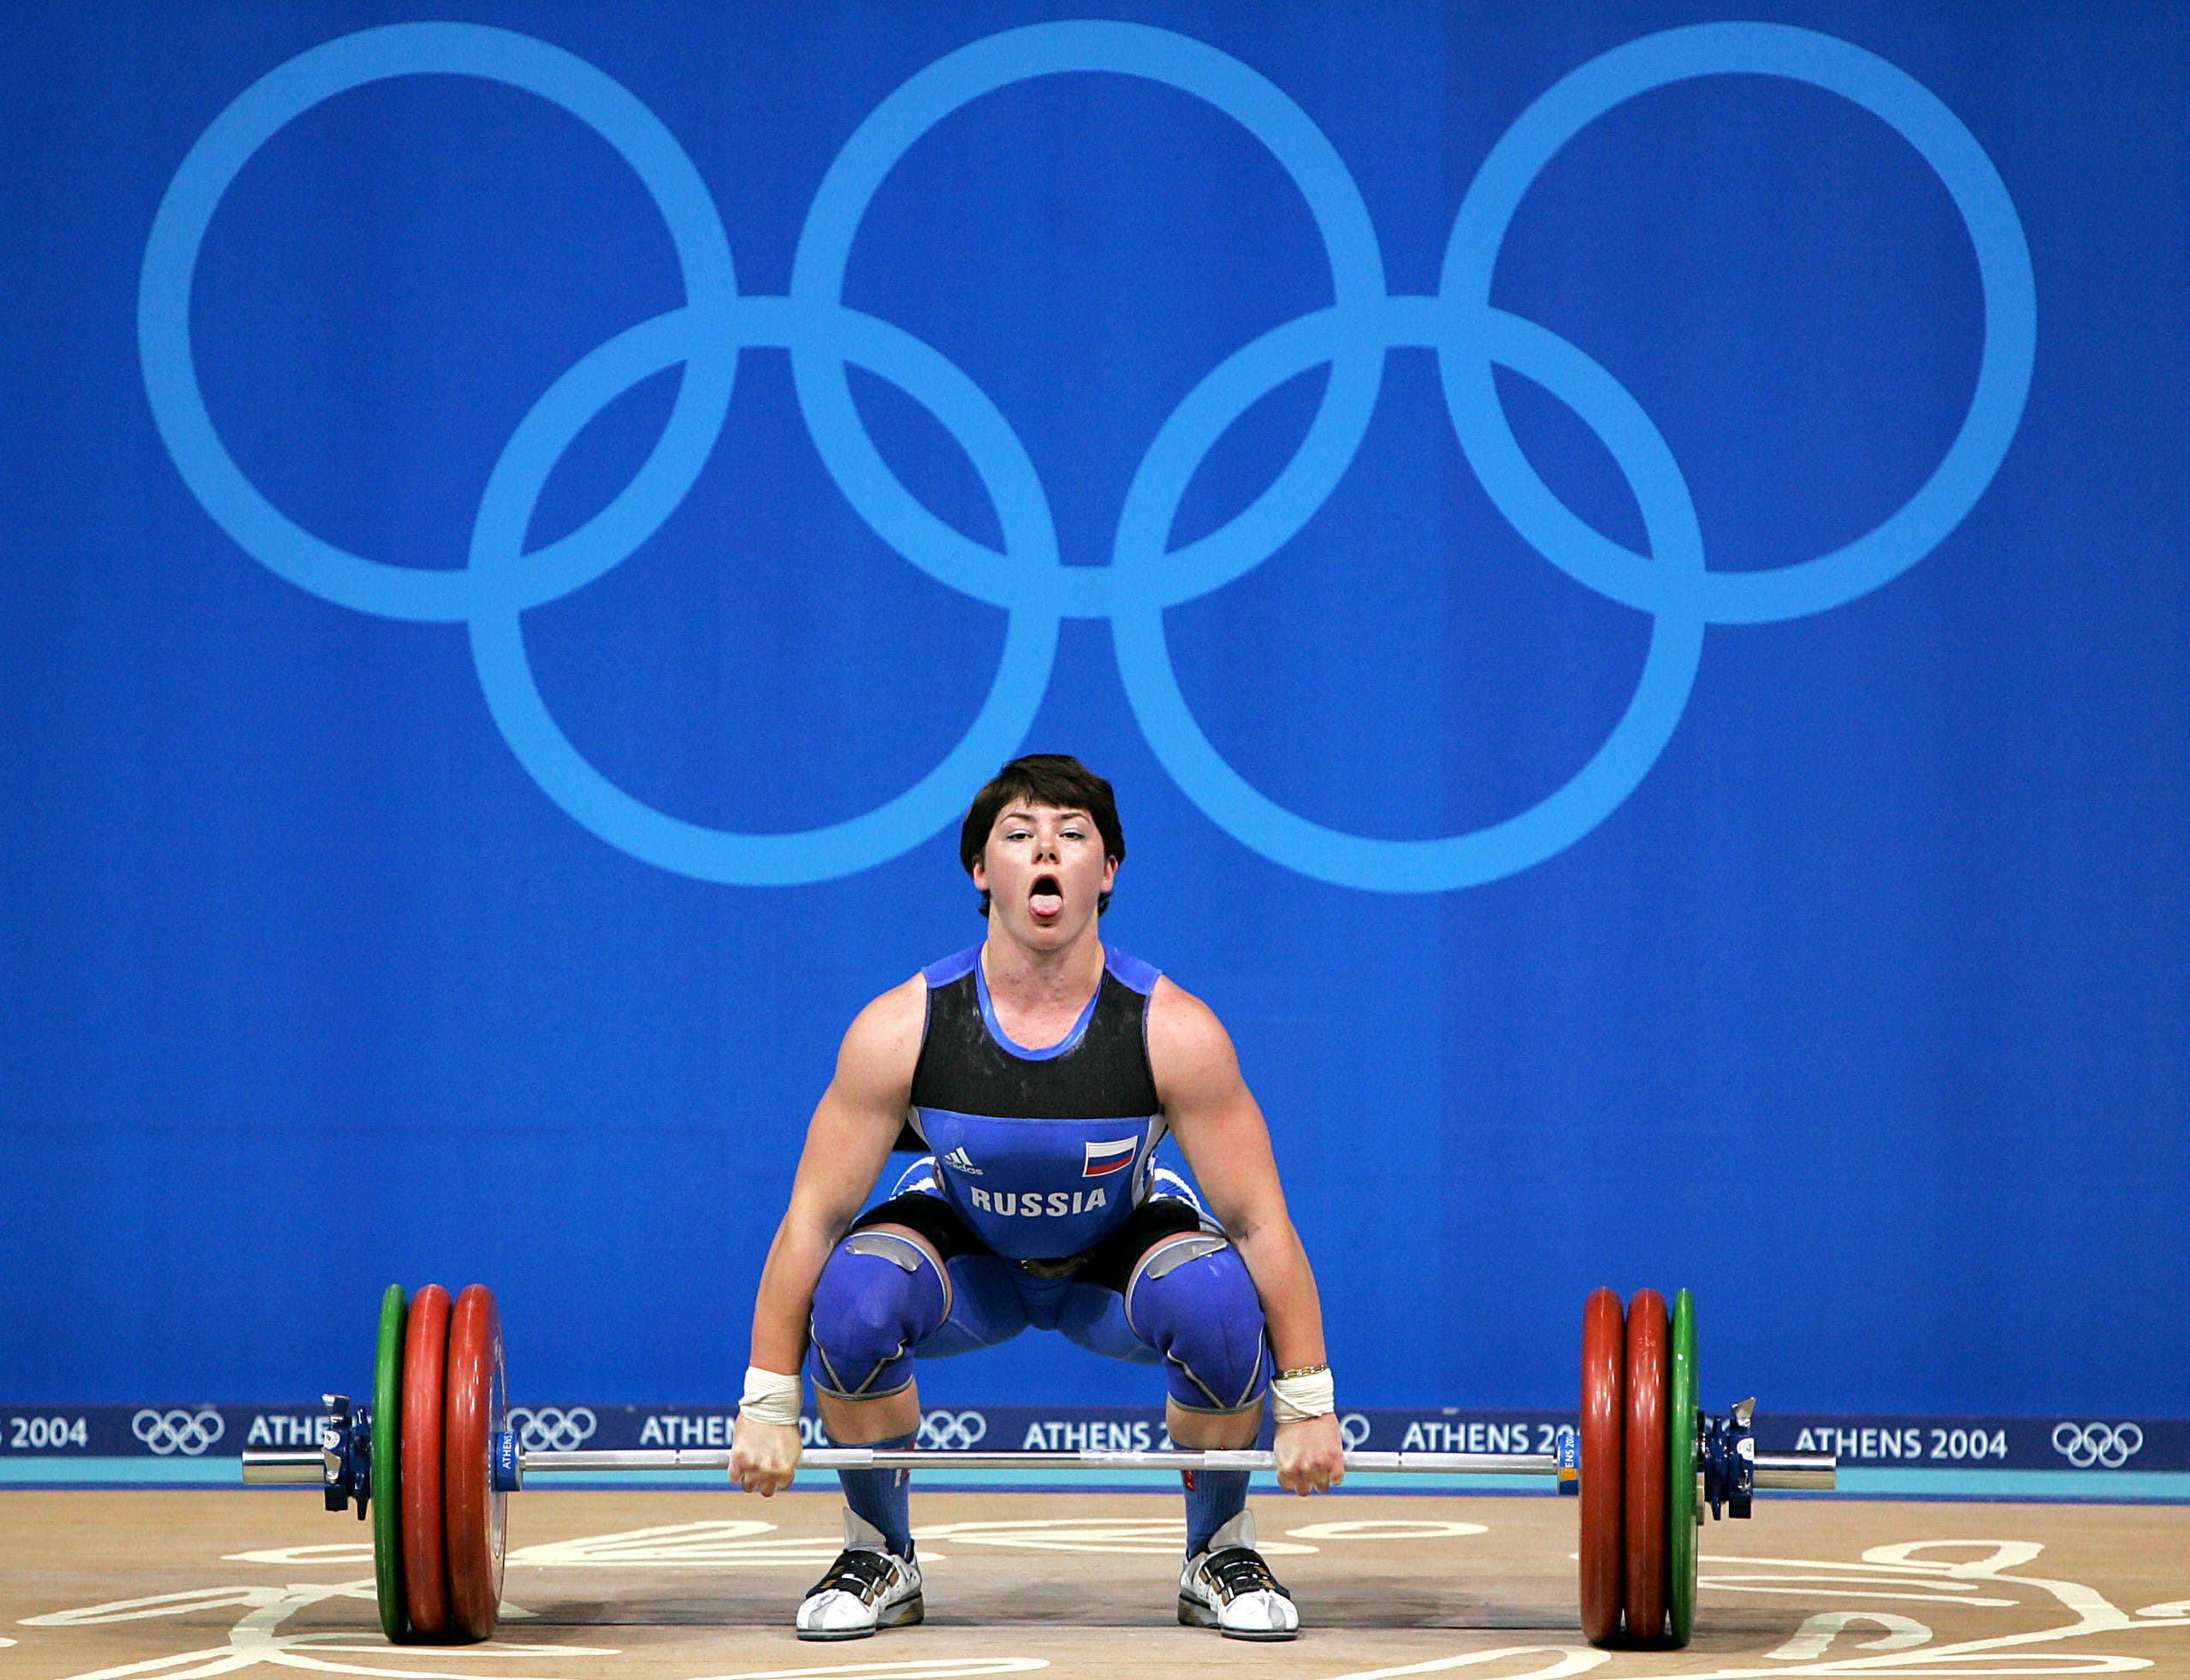 Russian weightlifter Natalia Zabolotnaia fails to lift 152.5 kg in clean & jerk of the 75kg women's weightlifting group (AP)